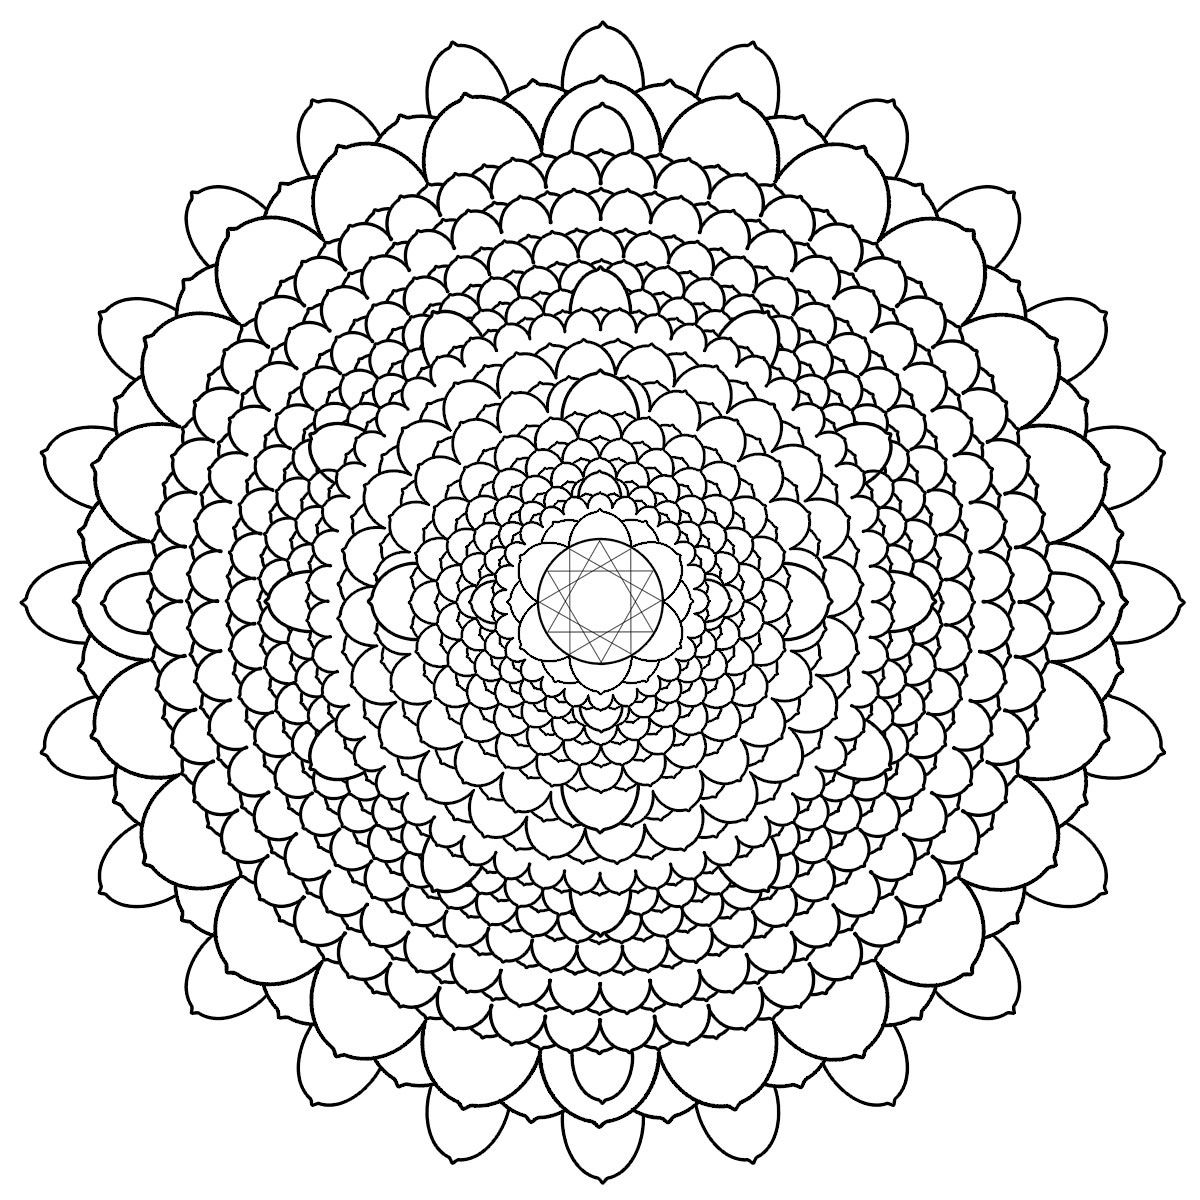 Hard mandala coloring pages for adults - Free Printable Mandalas For Adults Difficult Mandala Coloring Pages